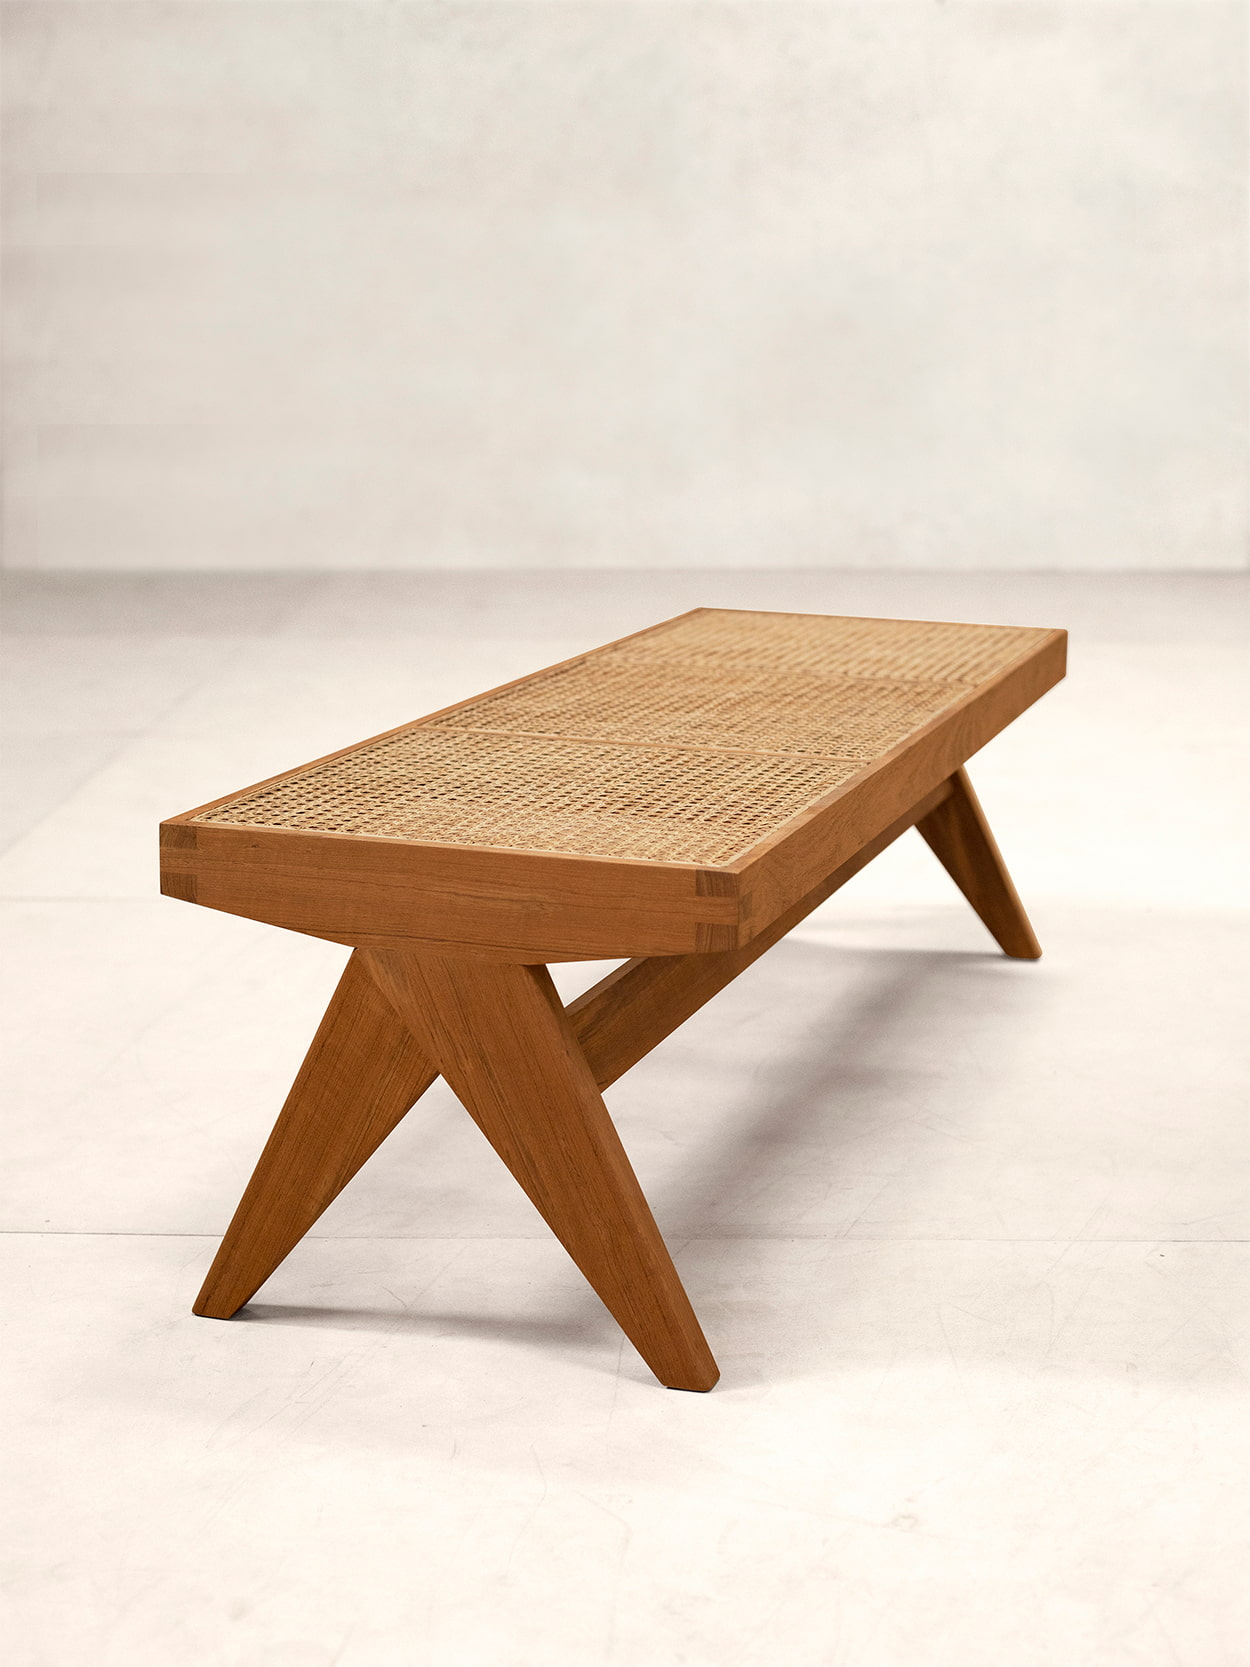 Teak and Cane Bench 1